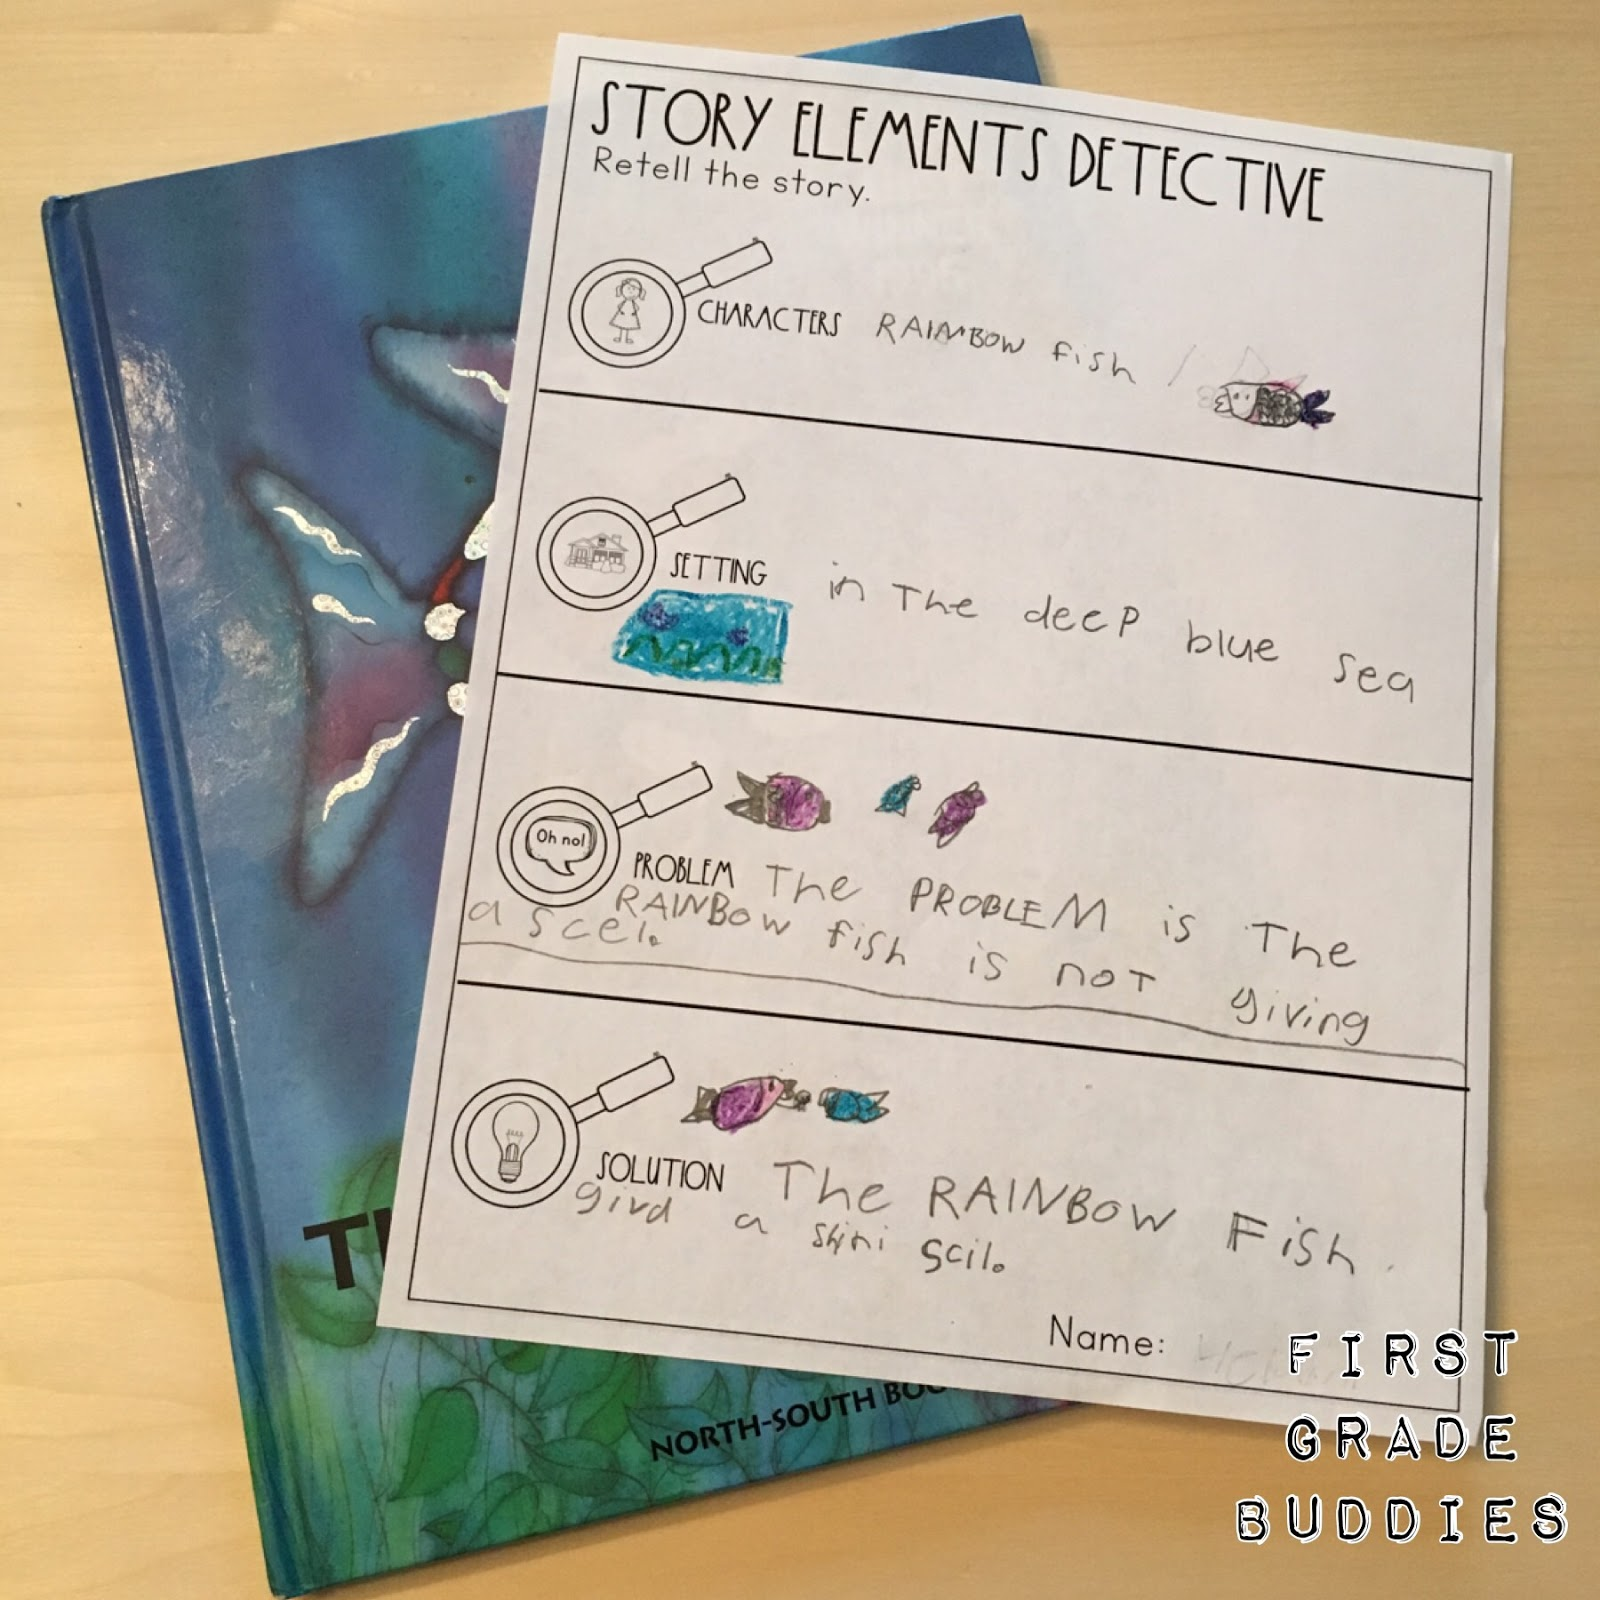 hight resolution of Story Elements Detective   First Grade Buddies